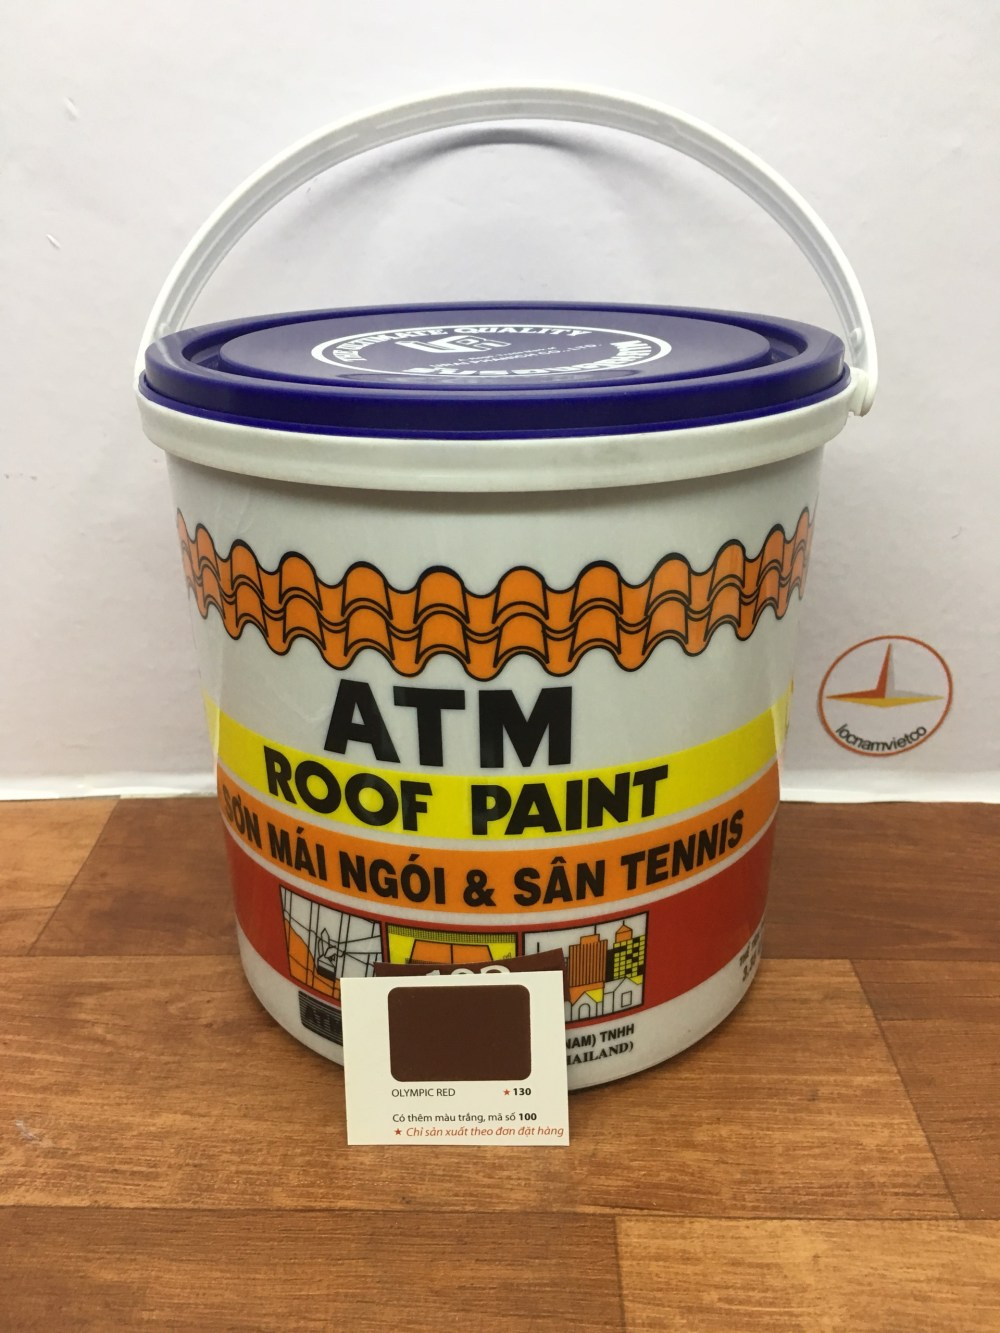 SON MAI NGOI & TENNIS ATM ROOF PAINT OLYMPIC RED 130 (1)